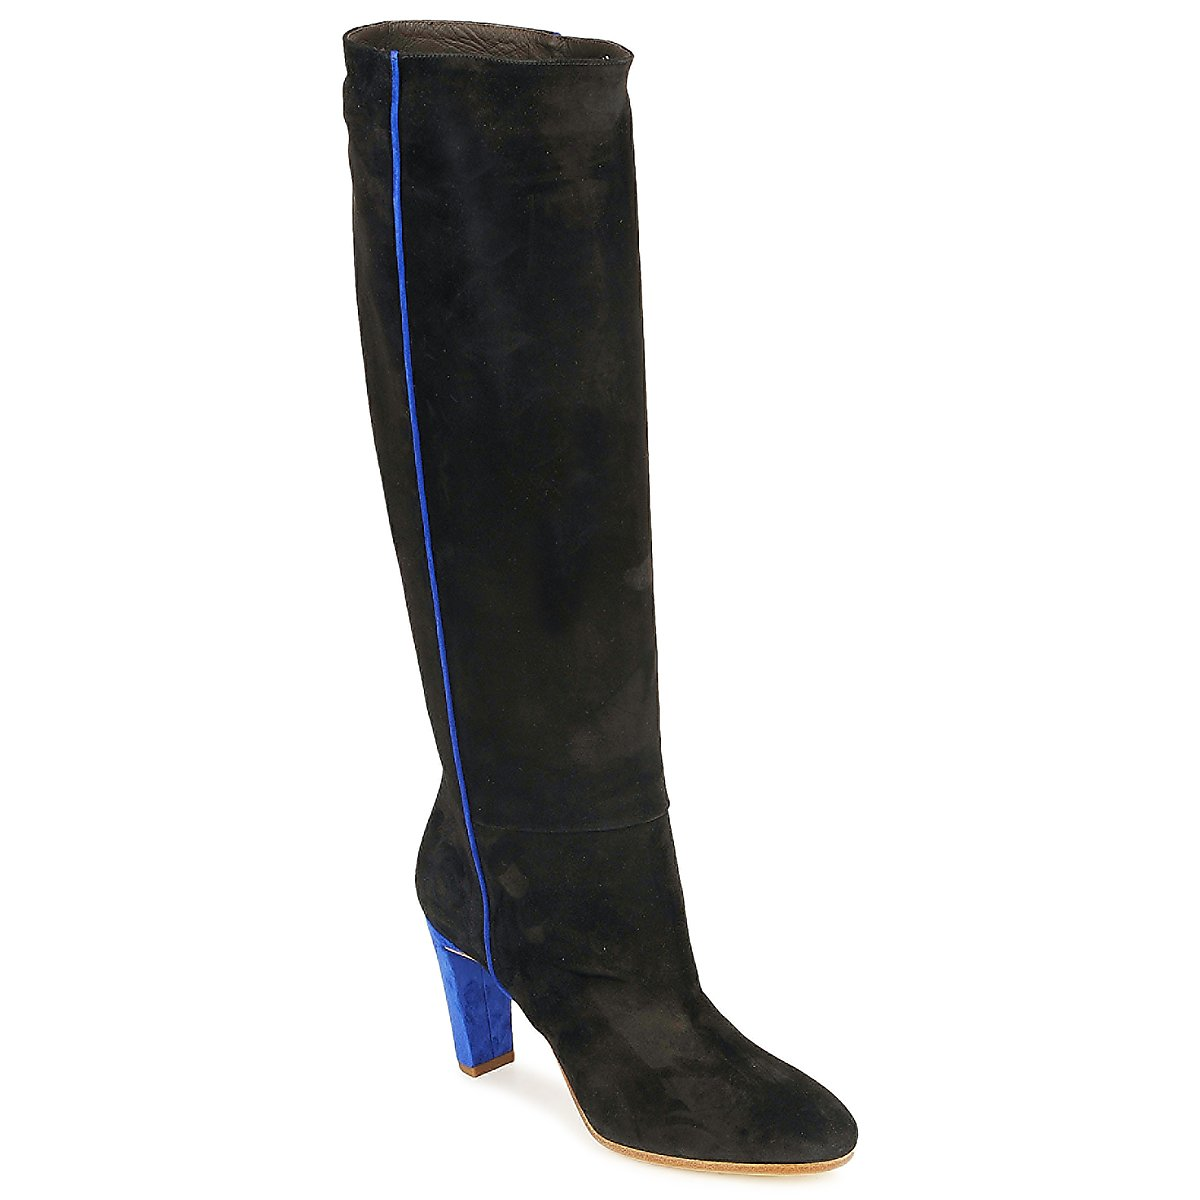 Michel Perry 13184 Black - Fast delivery | Spartoo Europe ! - Shoes Boots  Women 732,00 €